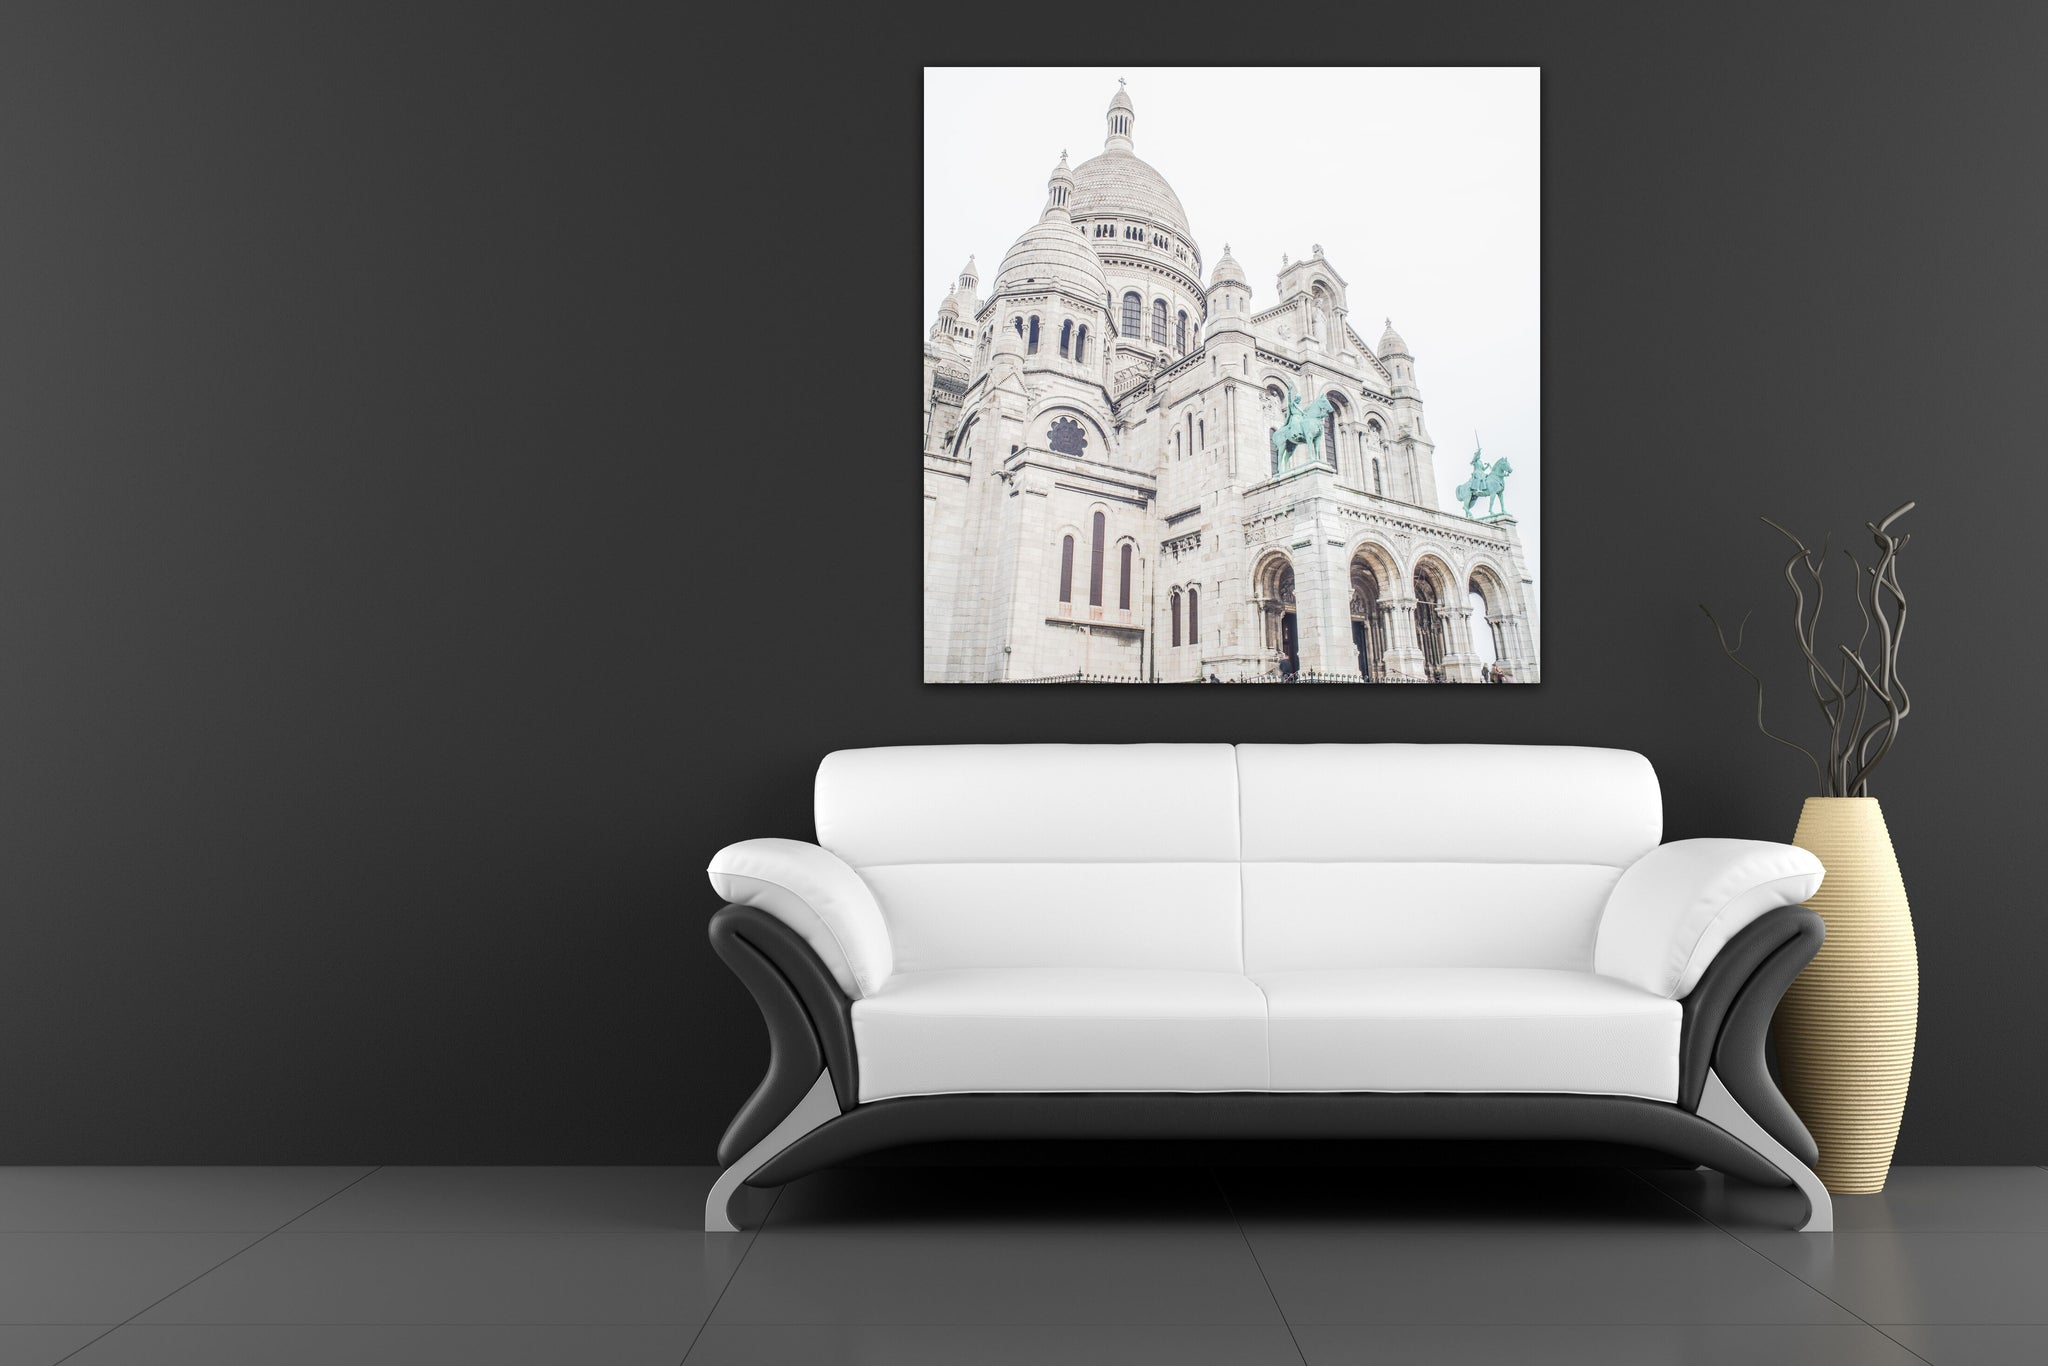 Sacré Cœur Cathedral Church Paris France Canvas Photography Metal Print Wall Art Picture Home Decor Poster Landmark